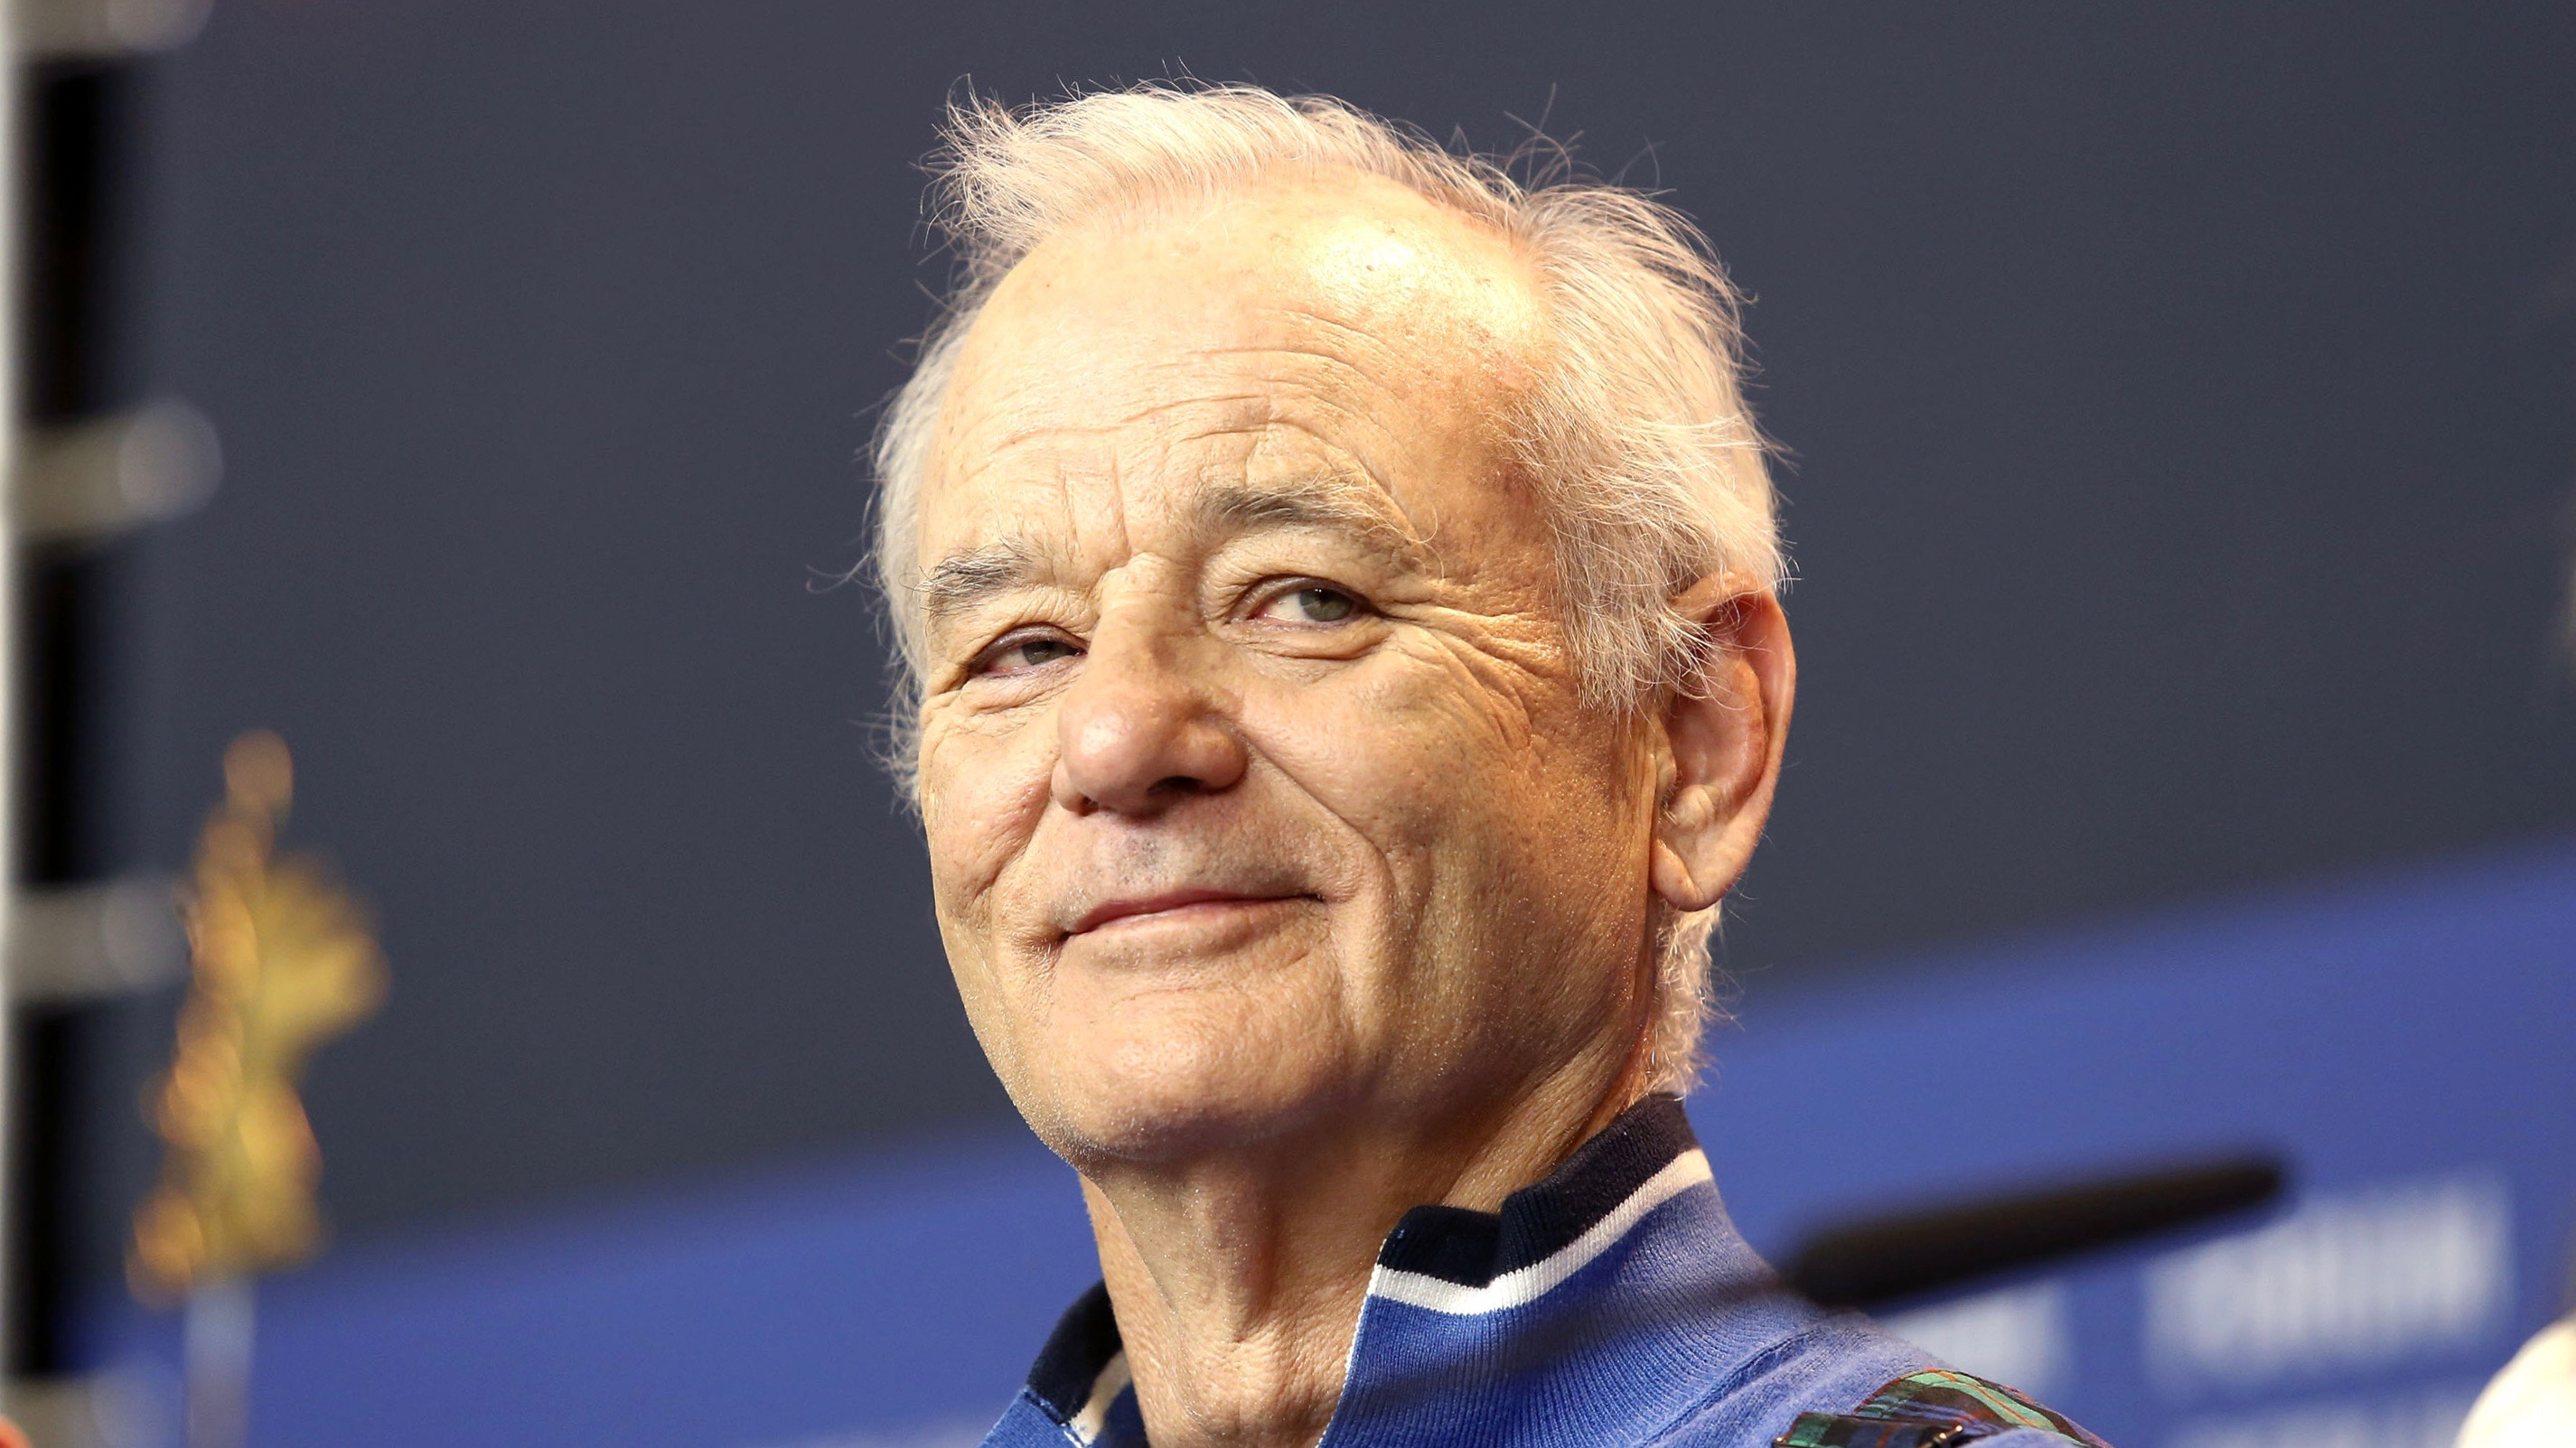 Apple's first film collaboration with A24 is 'On the Rocks,' reuniting Bill Murray & Sofia Coppola